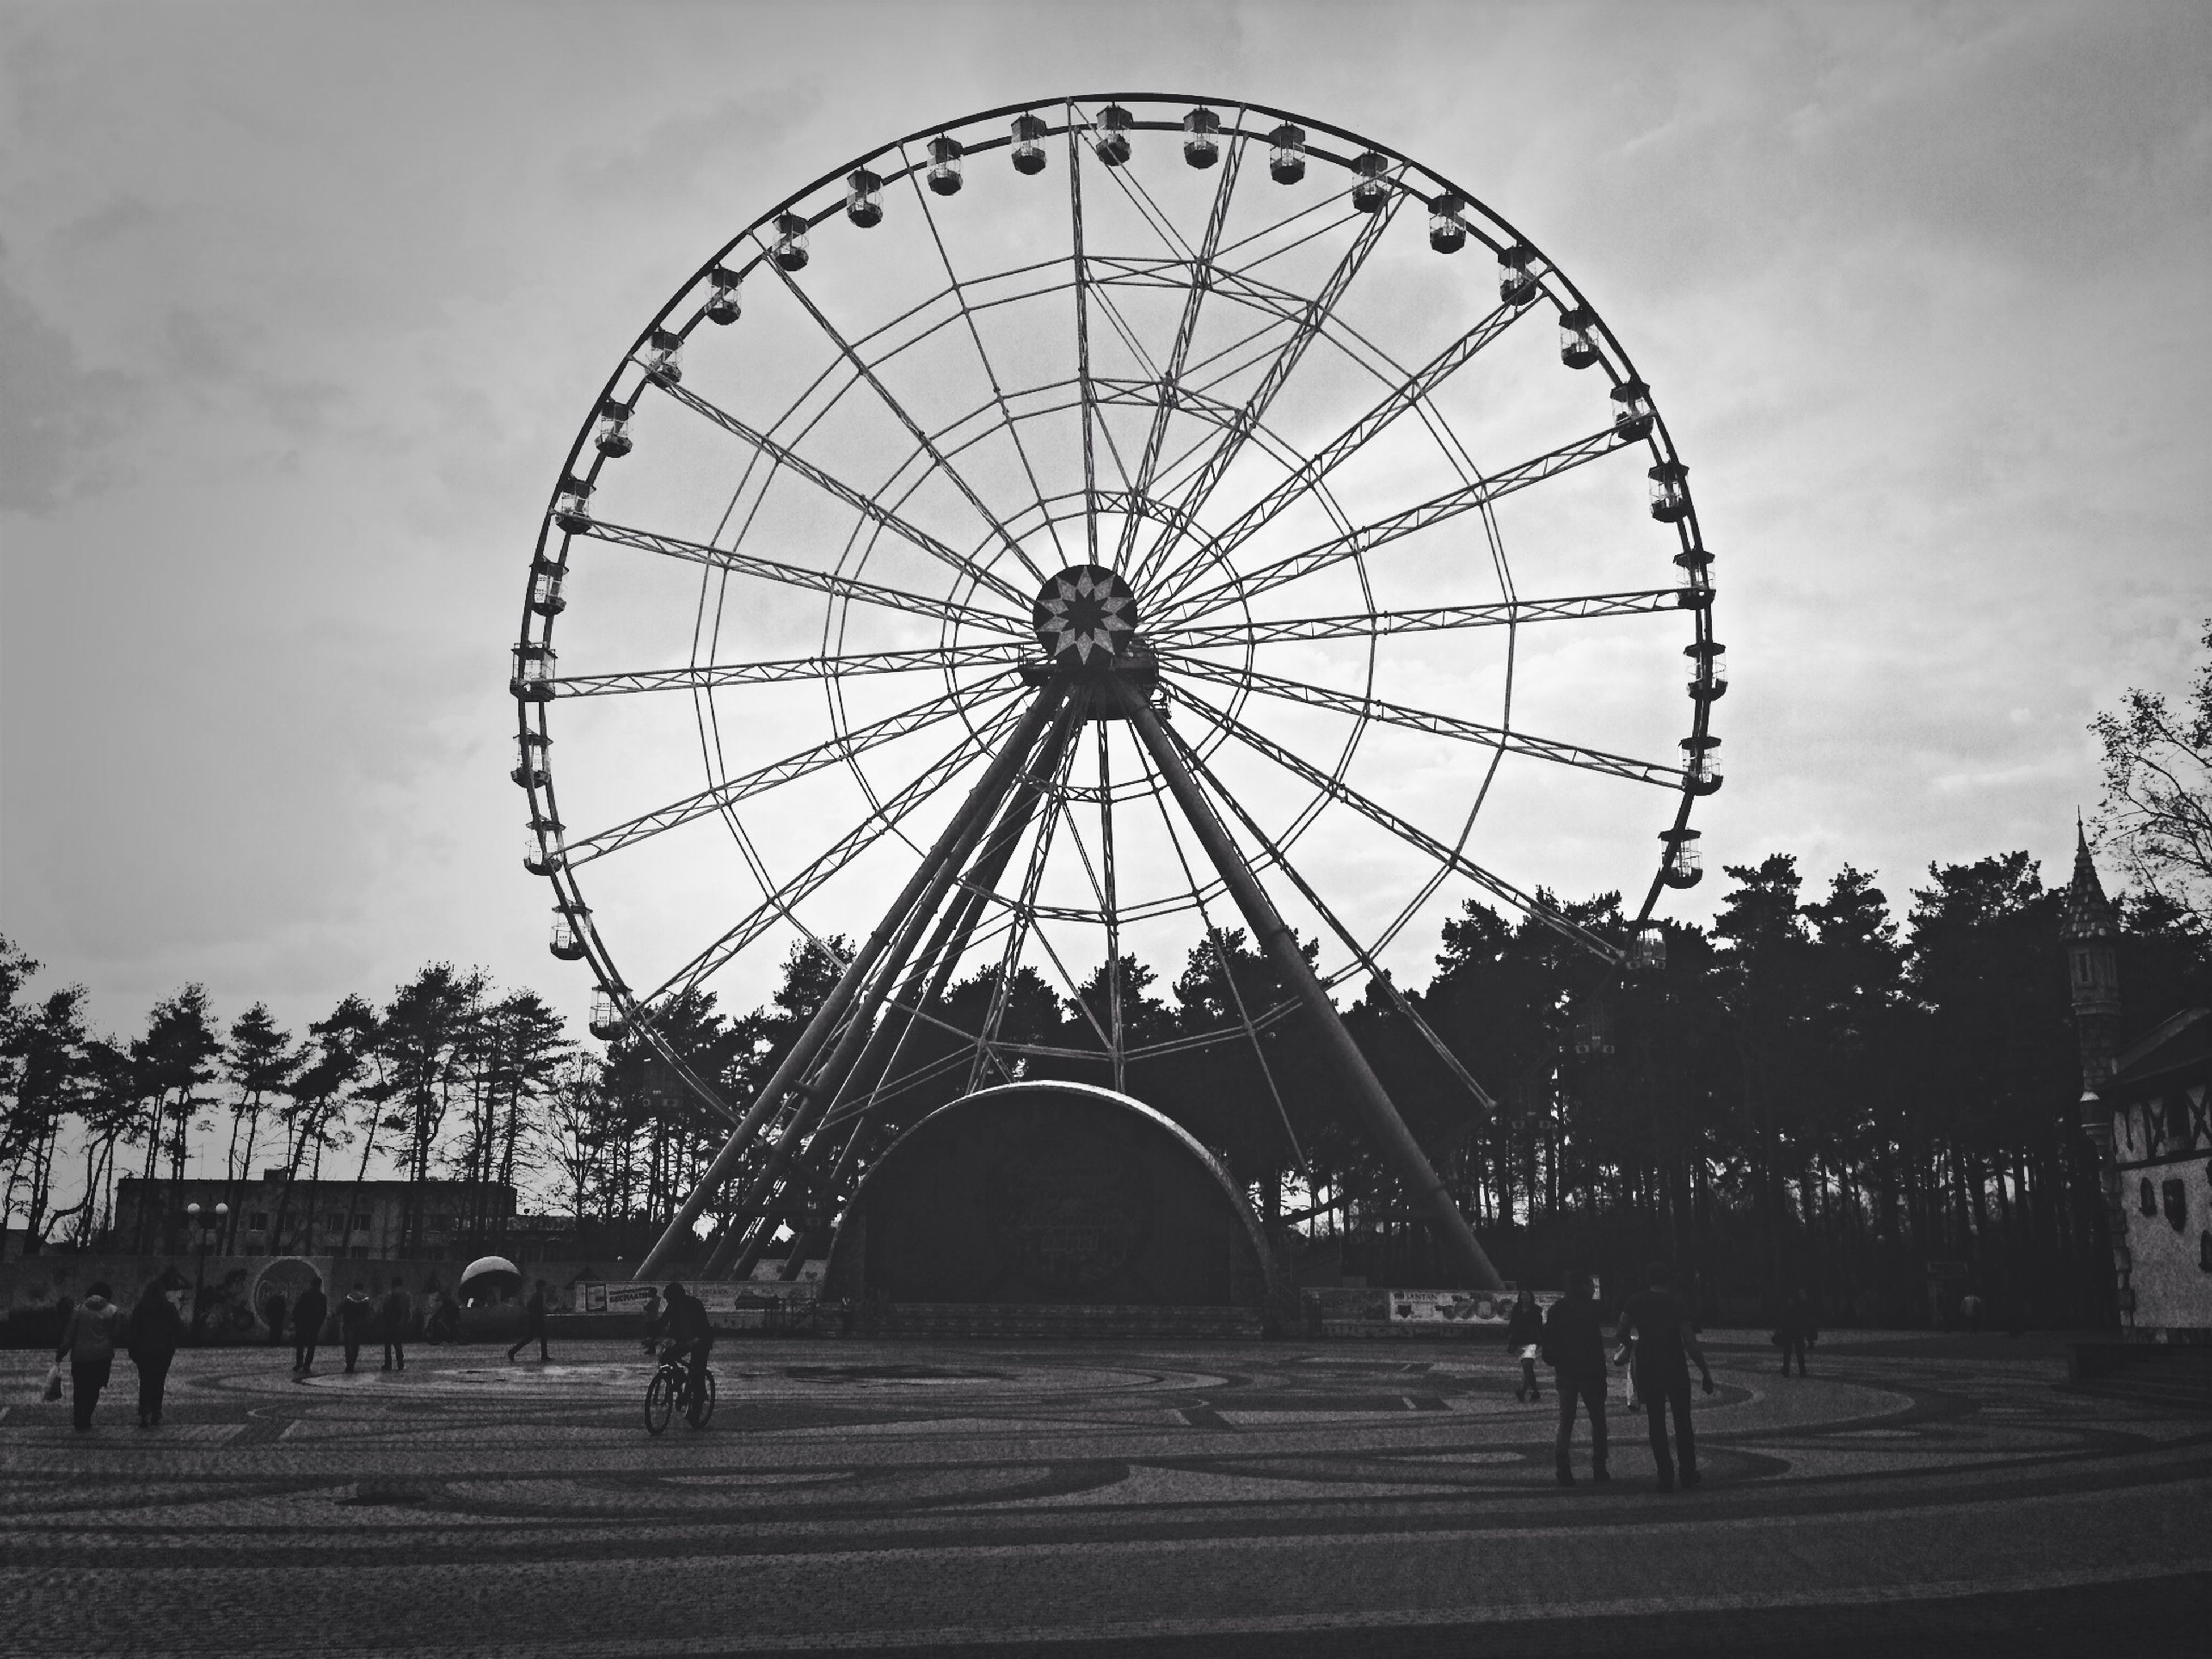 sky, ferris wheel, arts culture and entertainment, amusement park, amusement park ride, cloud - sky, low angle view, built structure, architecture, silhouette, cloudy, leisure activity, cloud, circle, tree, incidental people, outdoors, large group of people, day